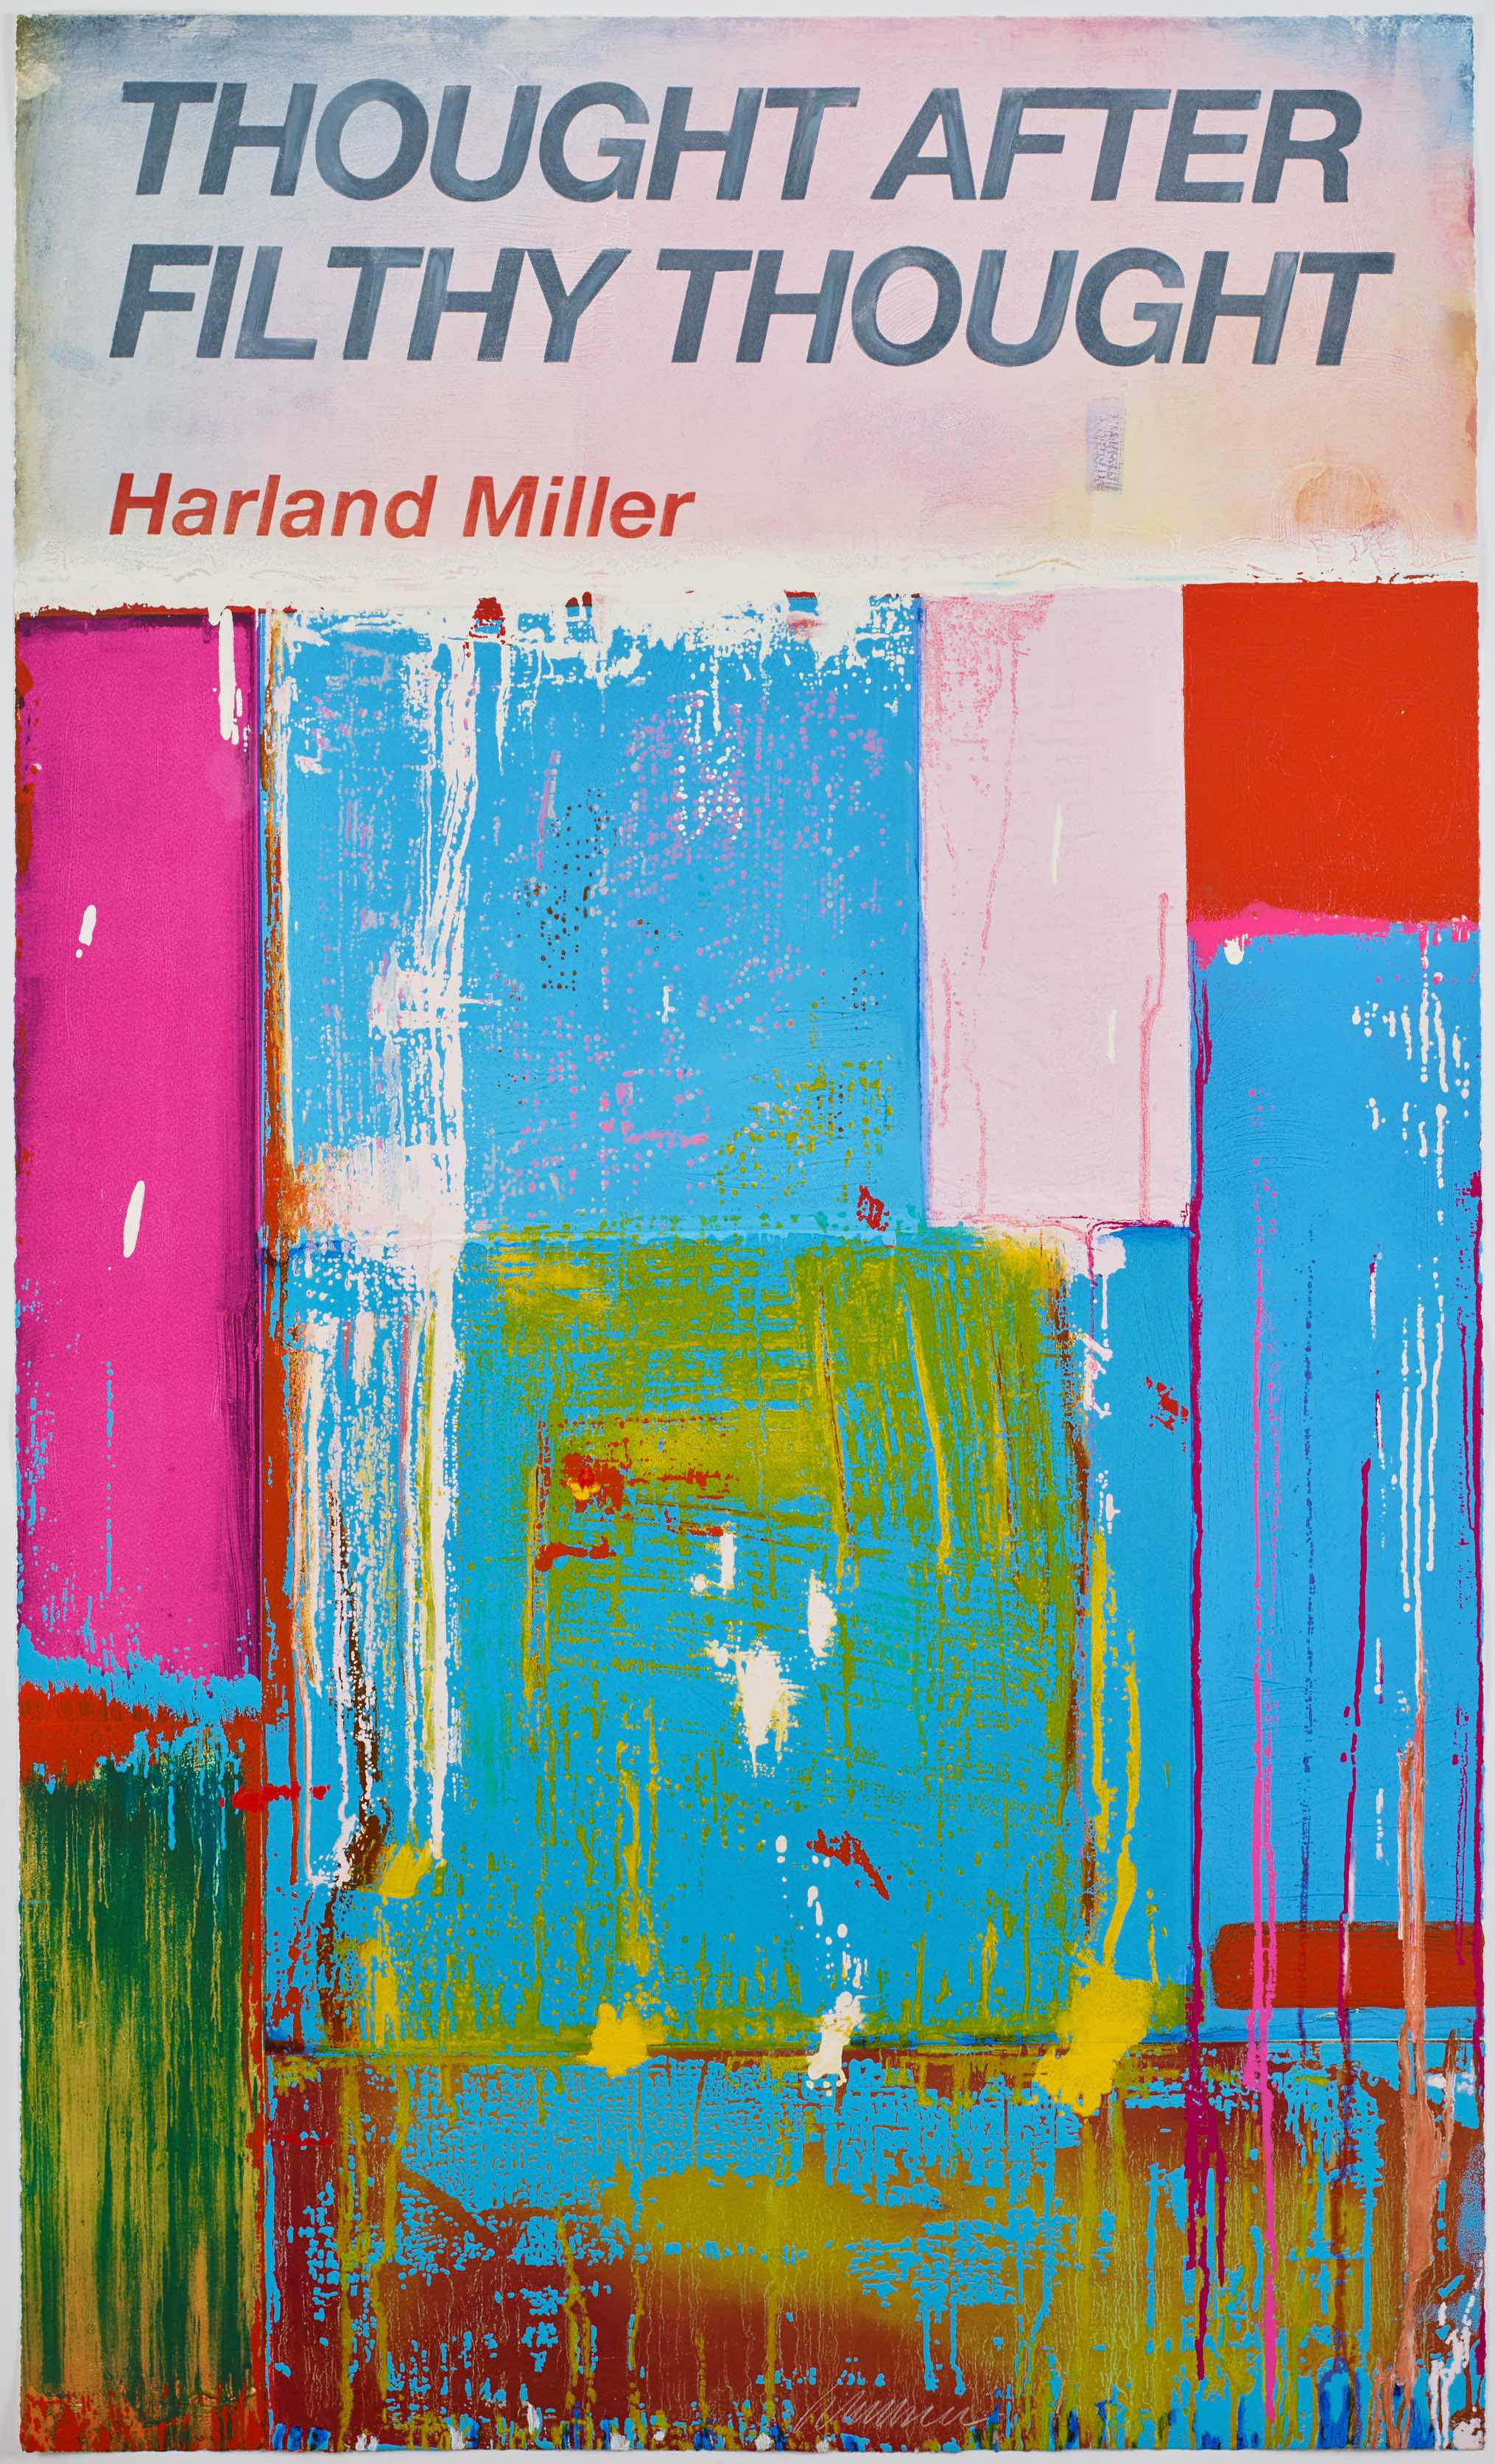 Harland Miller b.1964 ,  Thought After Filthy Thought , Etching with relief printing, 148.9 x 89.4 cm, Edition of 75